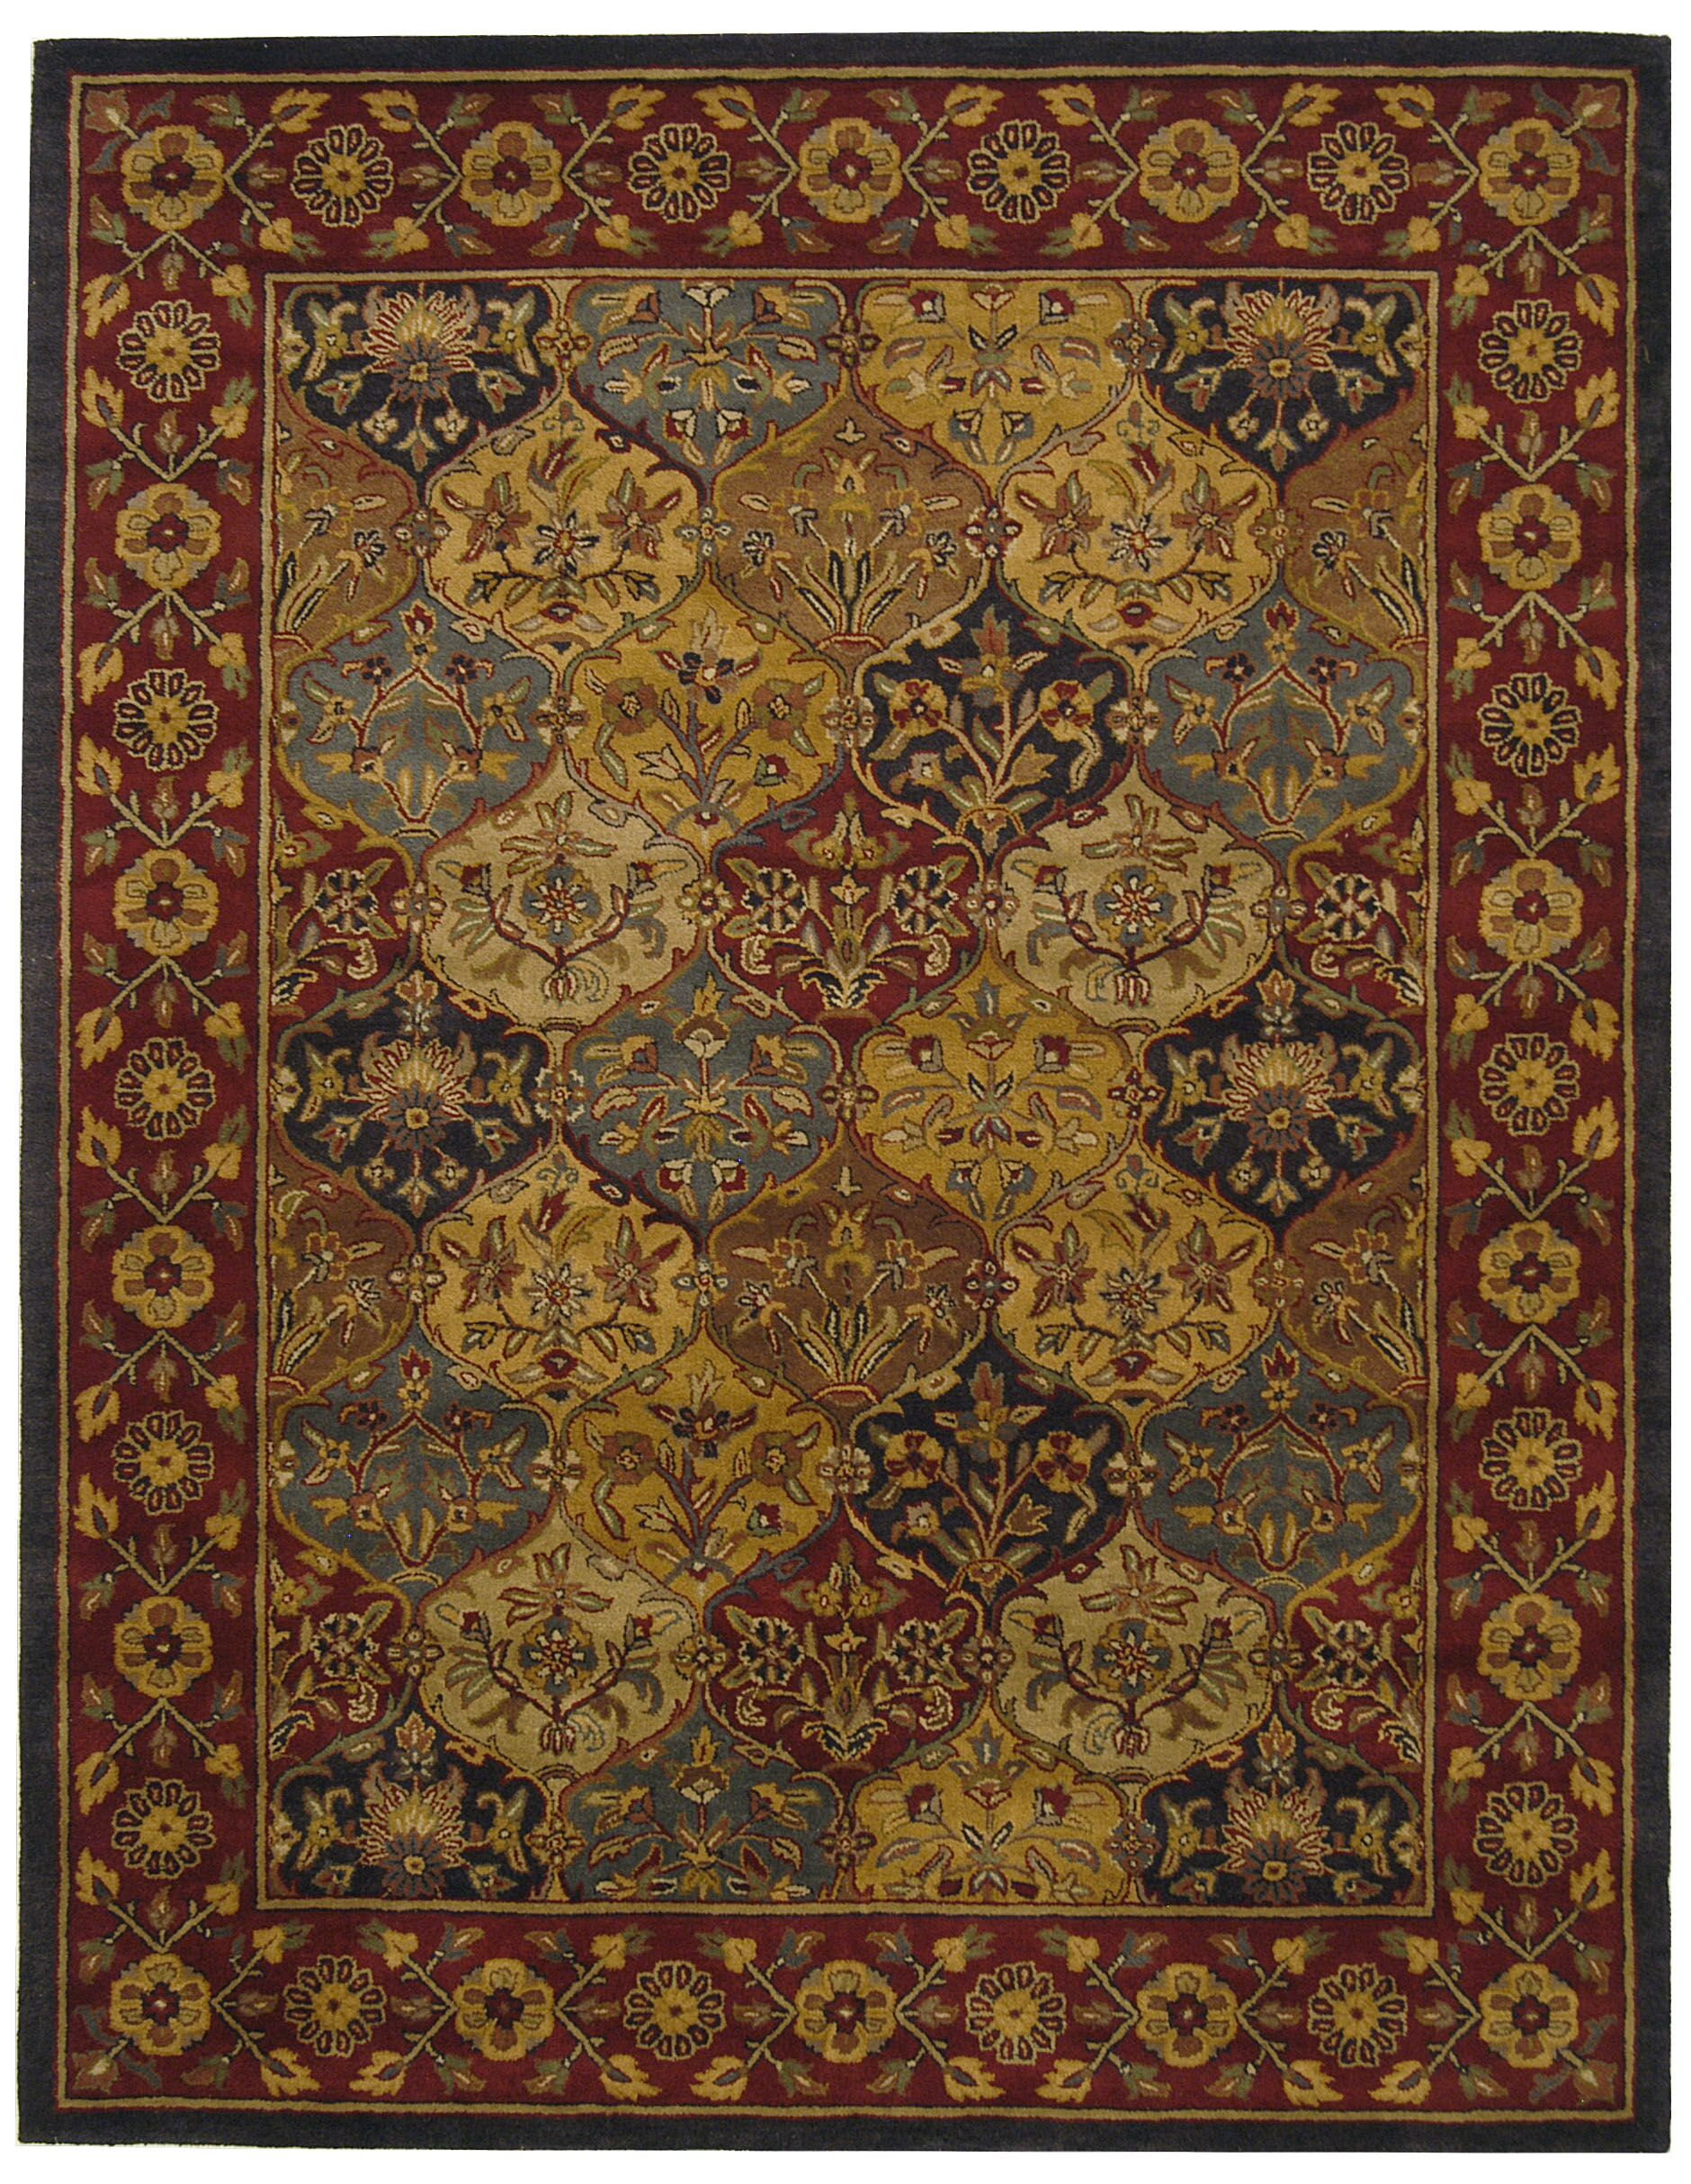 Balthrop Handmade Wool Red/Gold Area Rug Rug Size: Rectangle 7'6